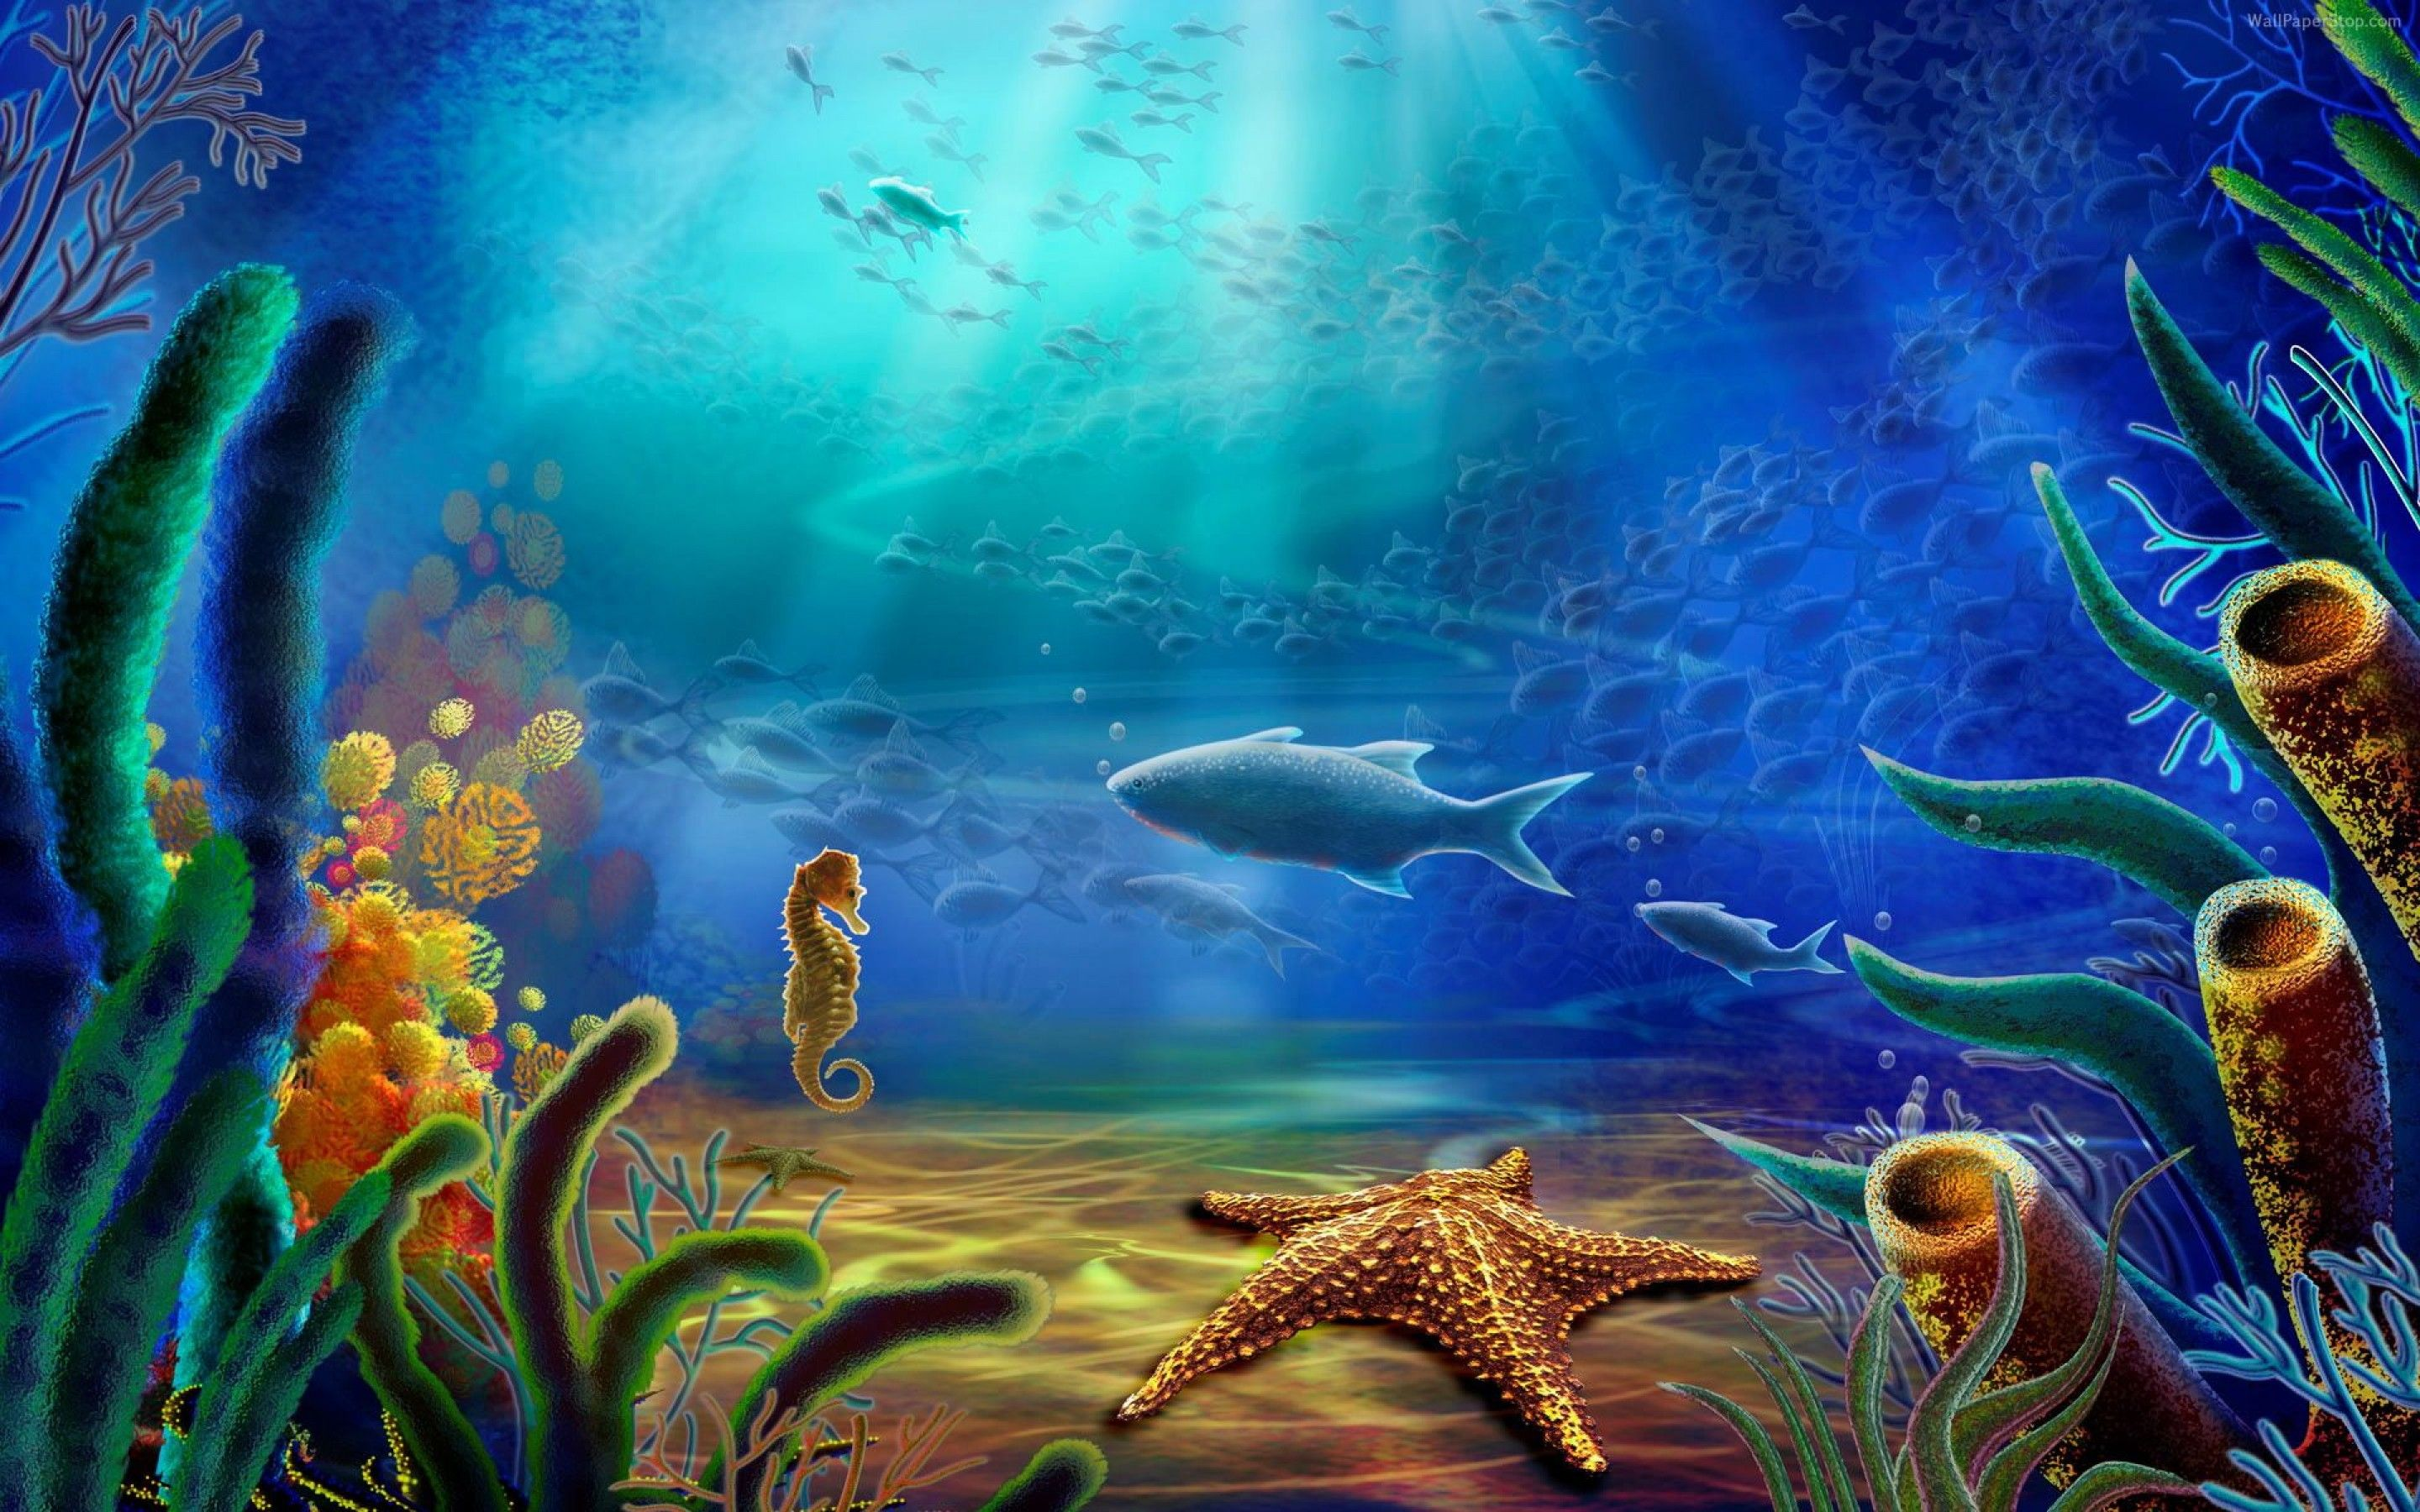 2880x1800px 1046.96 KB Under The Sea #464394 | Under the Sea | Ocean wallpaper Underwater ...